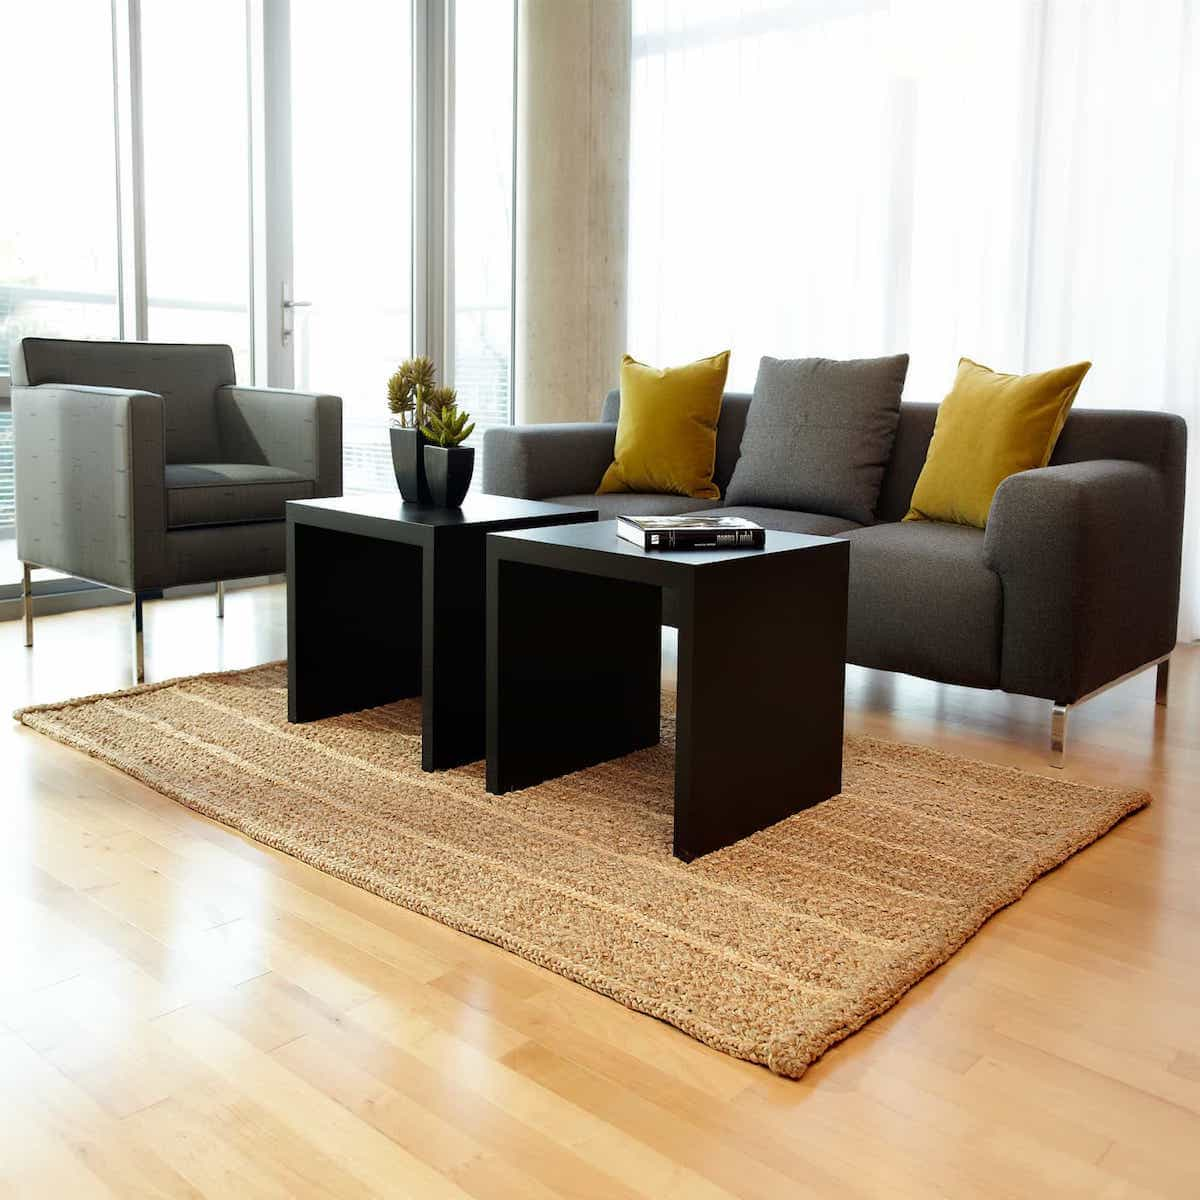 Square Sisal Rug Modern Style For Contemporary Apartment Decor (Image 15 of 15)